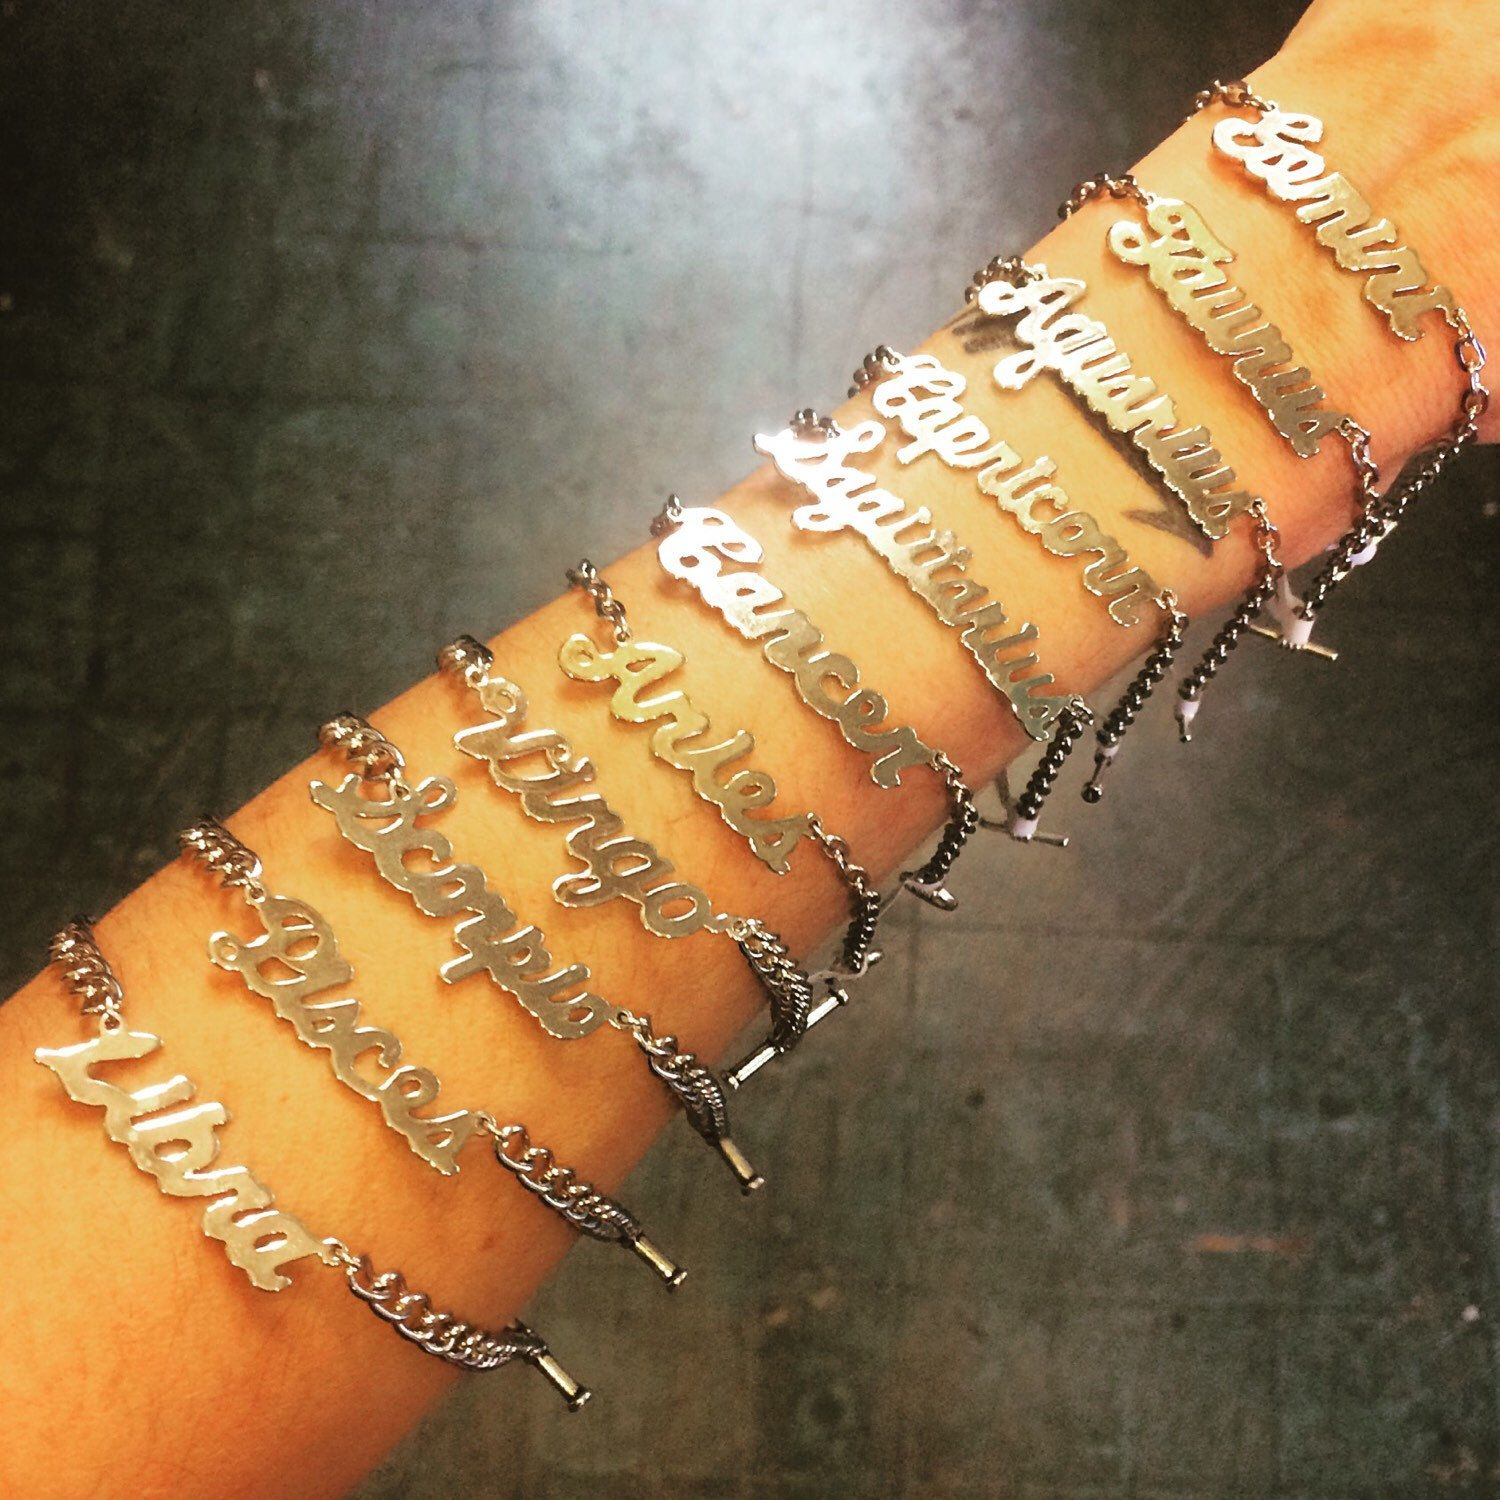 Restocked these #handmade silver #zodiac script #bracelets. Sorry, #leo is SOLD OUT. All the rest available in store and online. Link in bio to shop. ✨ . #heytiger #shopheytiger #handmadeshop #buyhandmade #supporthandmade #hellostranger #etsy #etsyseller #etsyshop #etsyhandmade #handmadejewelry #handmadebracelet #aries #taurus #gemini #cancer #virgo #libra #scorpio #sagittarius #capricorn #aquarius #pisces #astrology #whatsyoursign